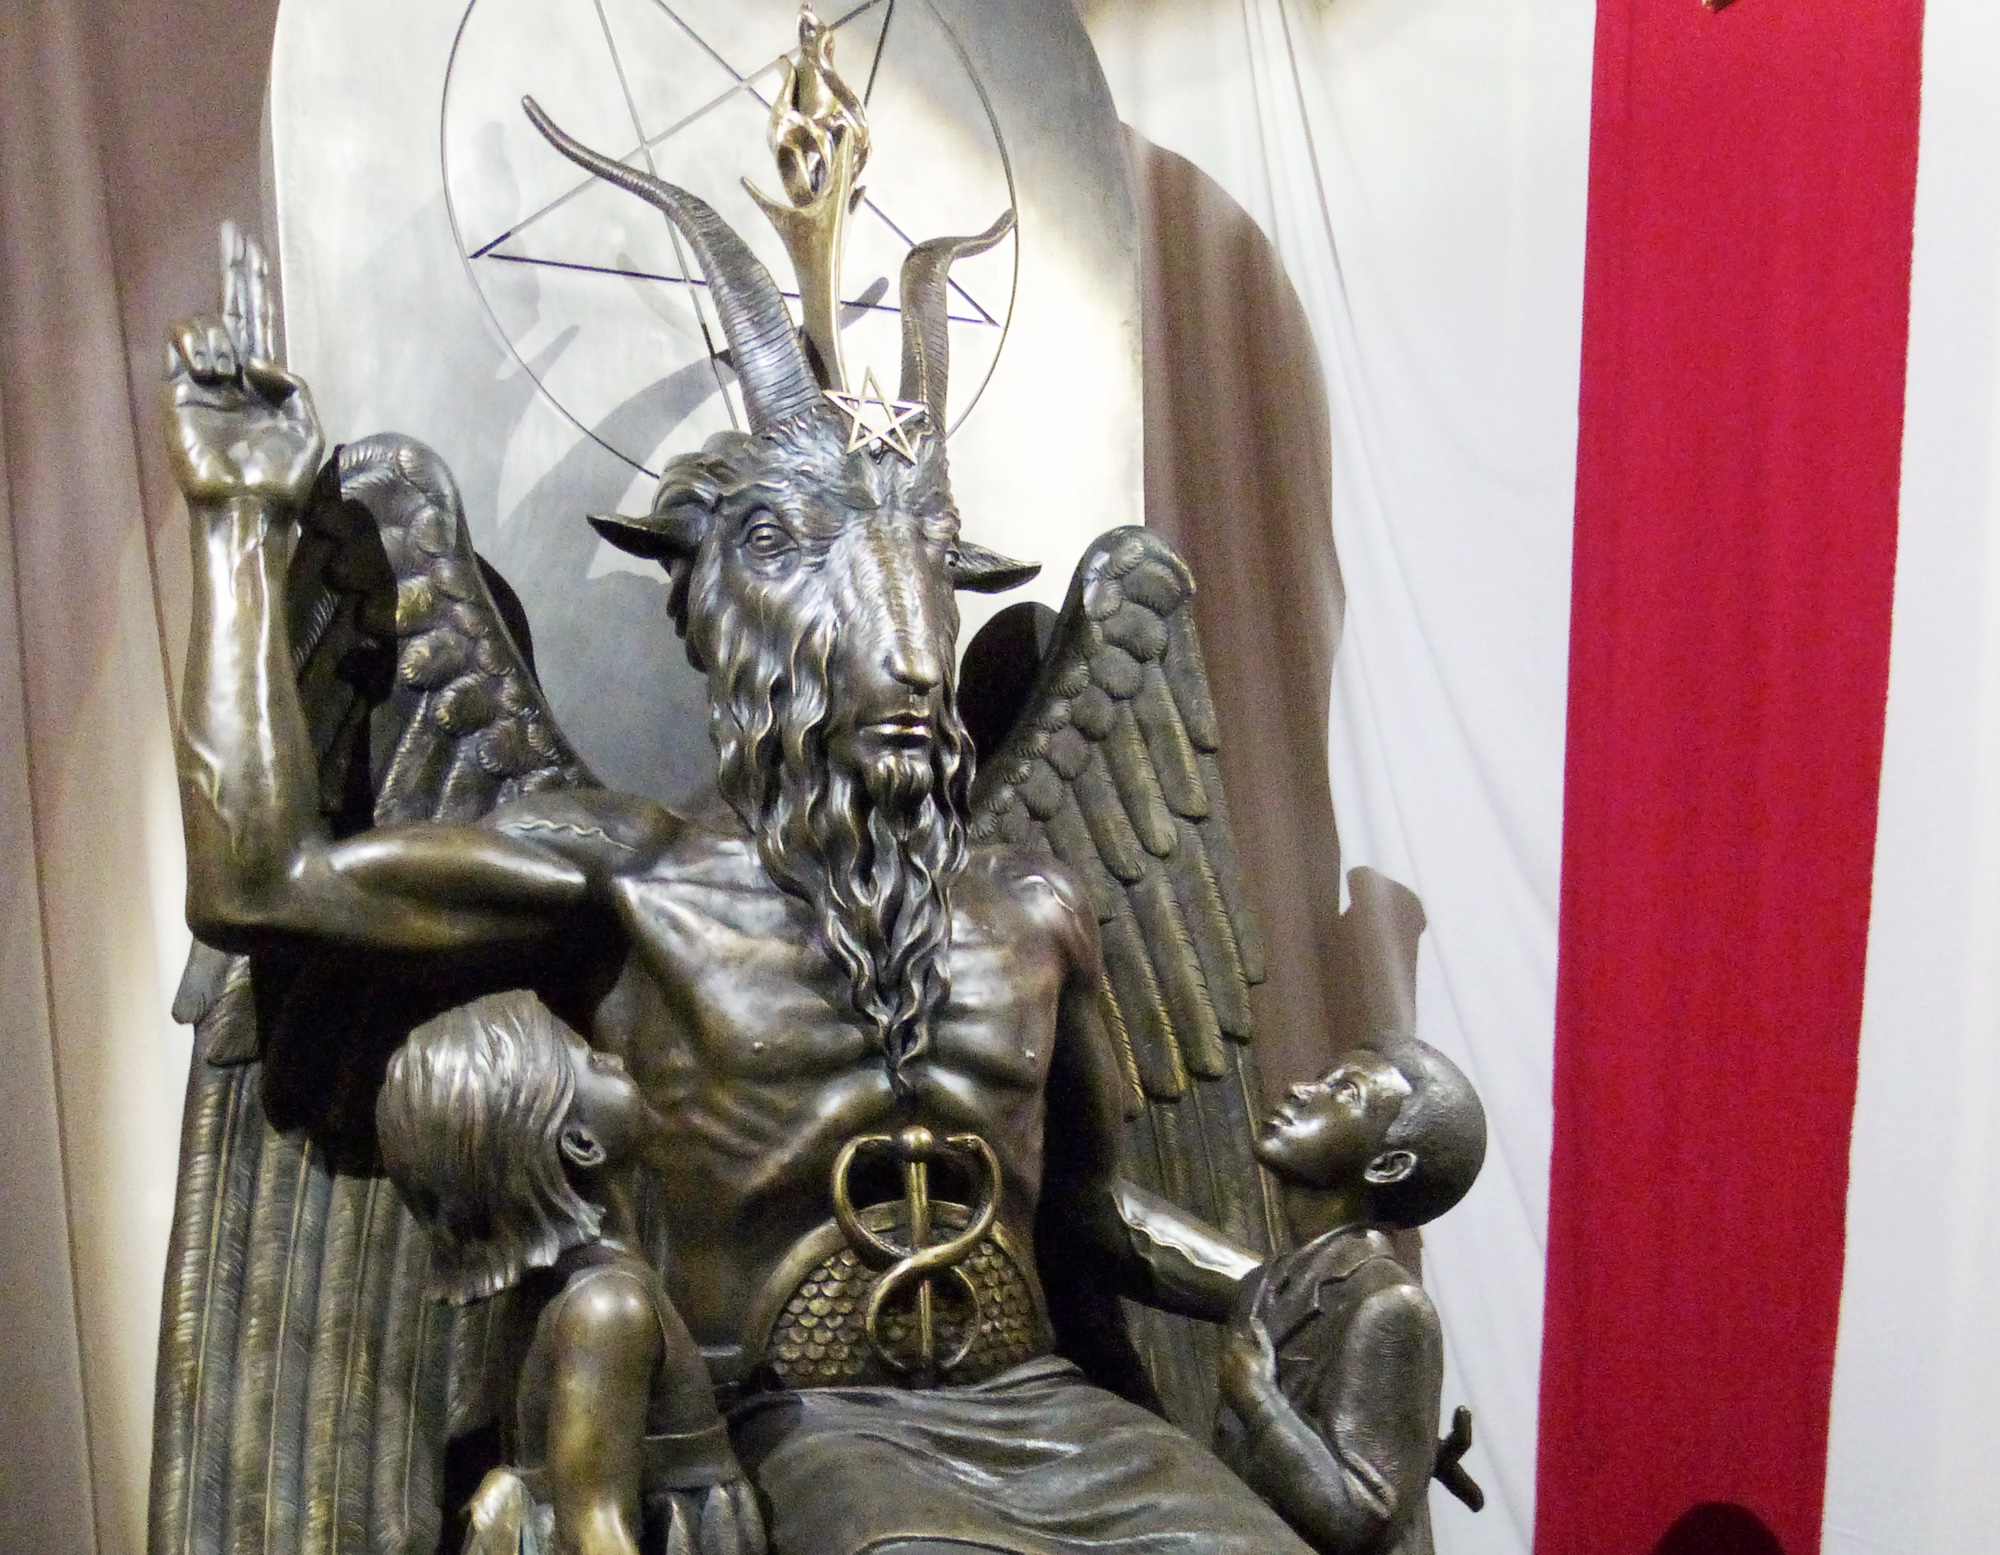 Satanic temple challenges abortion law in Missouri